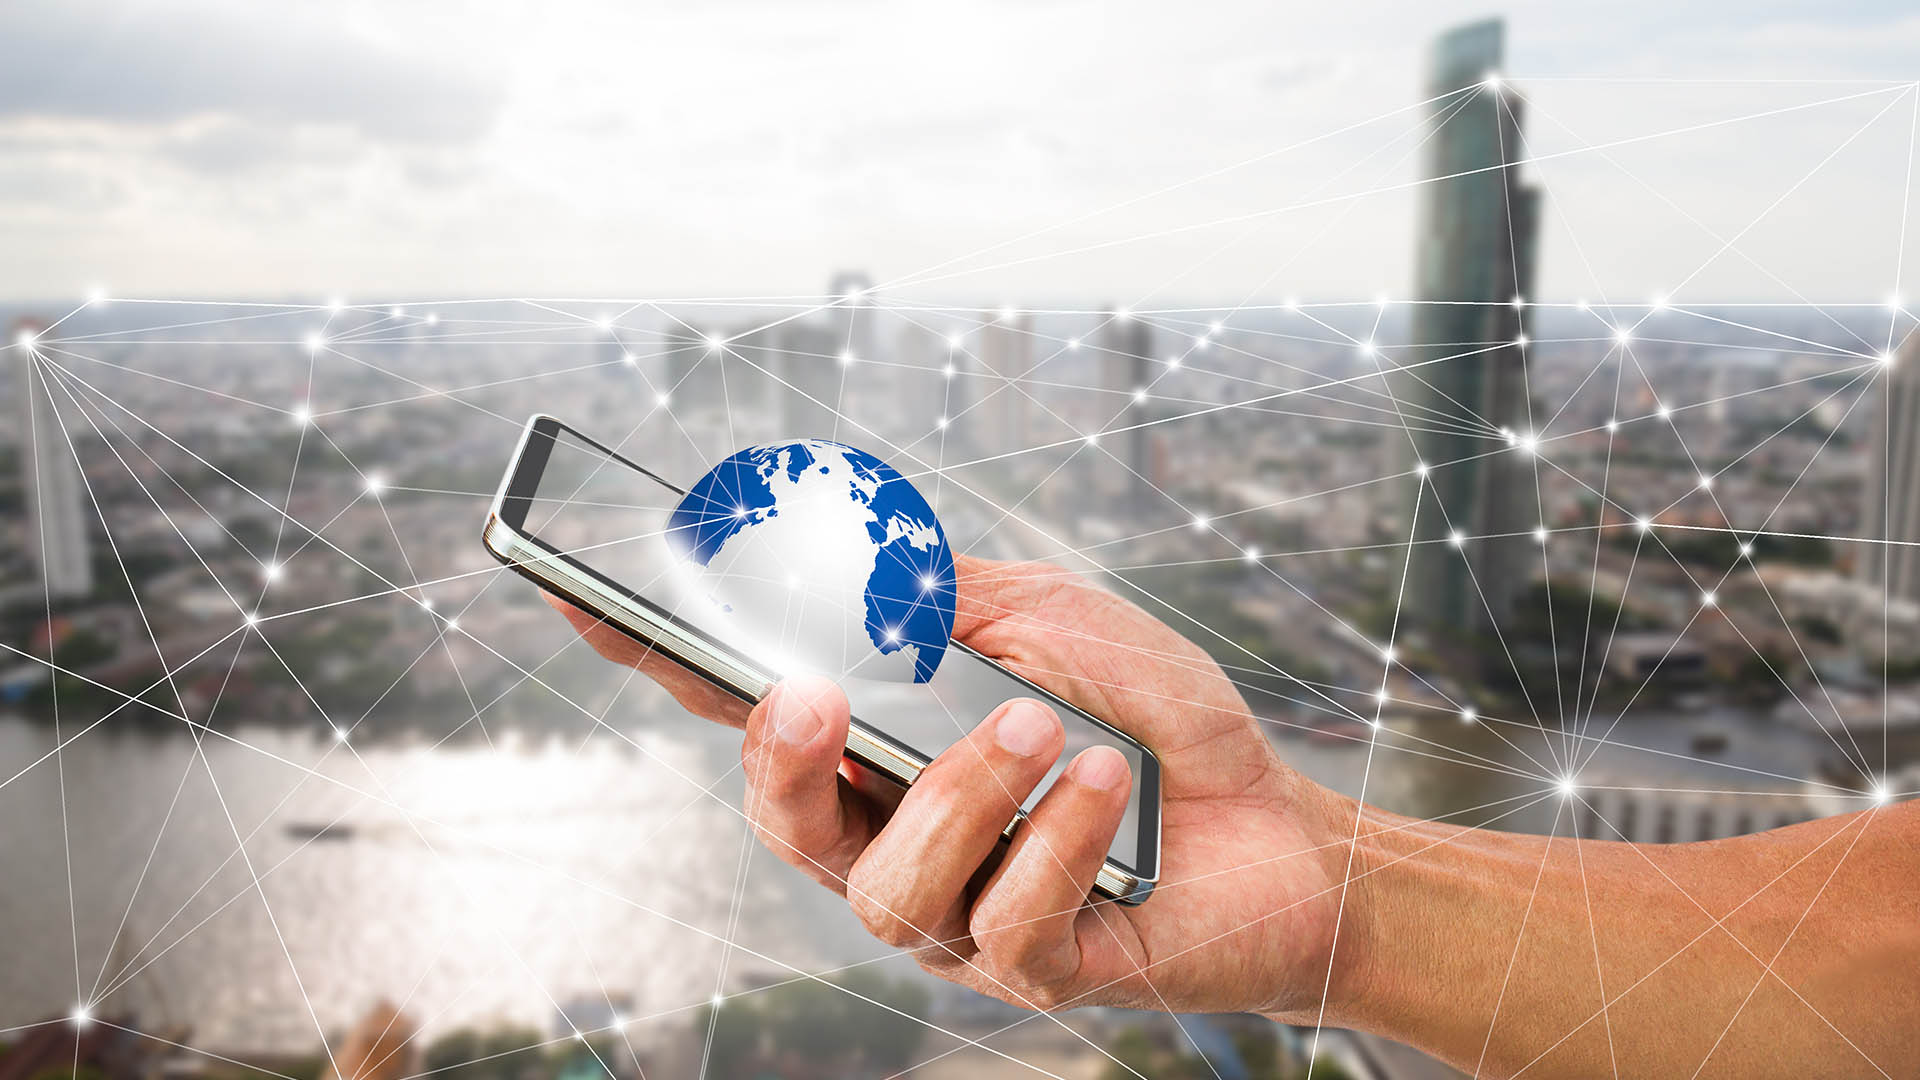 Man's hand holding mobile phone with globe on blurred city backg